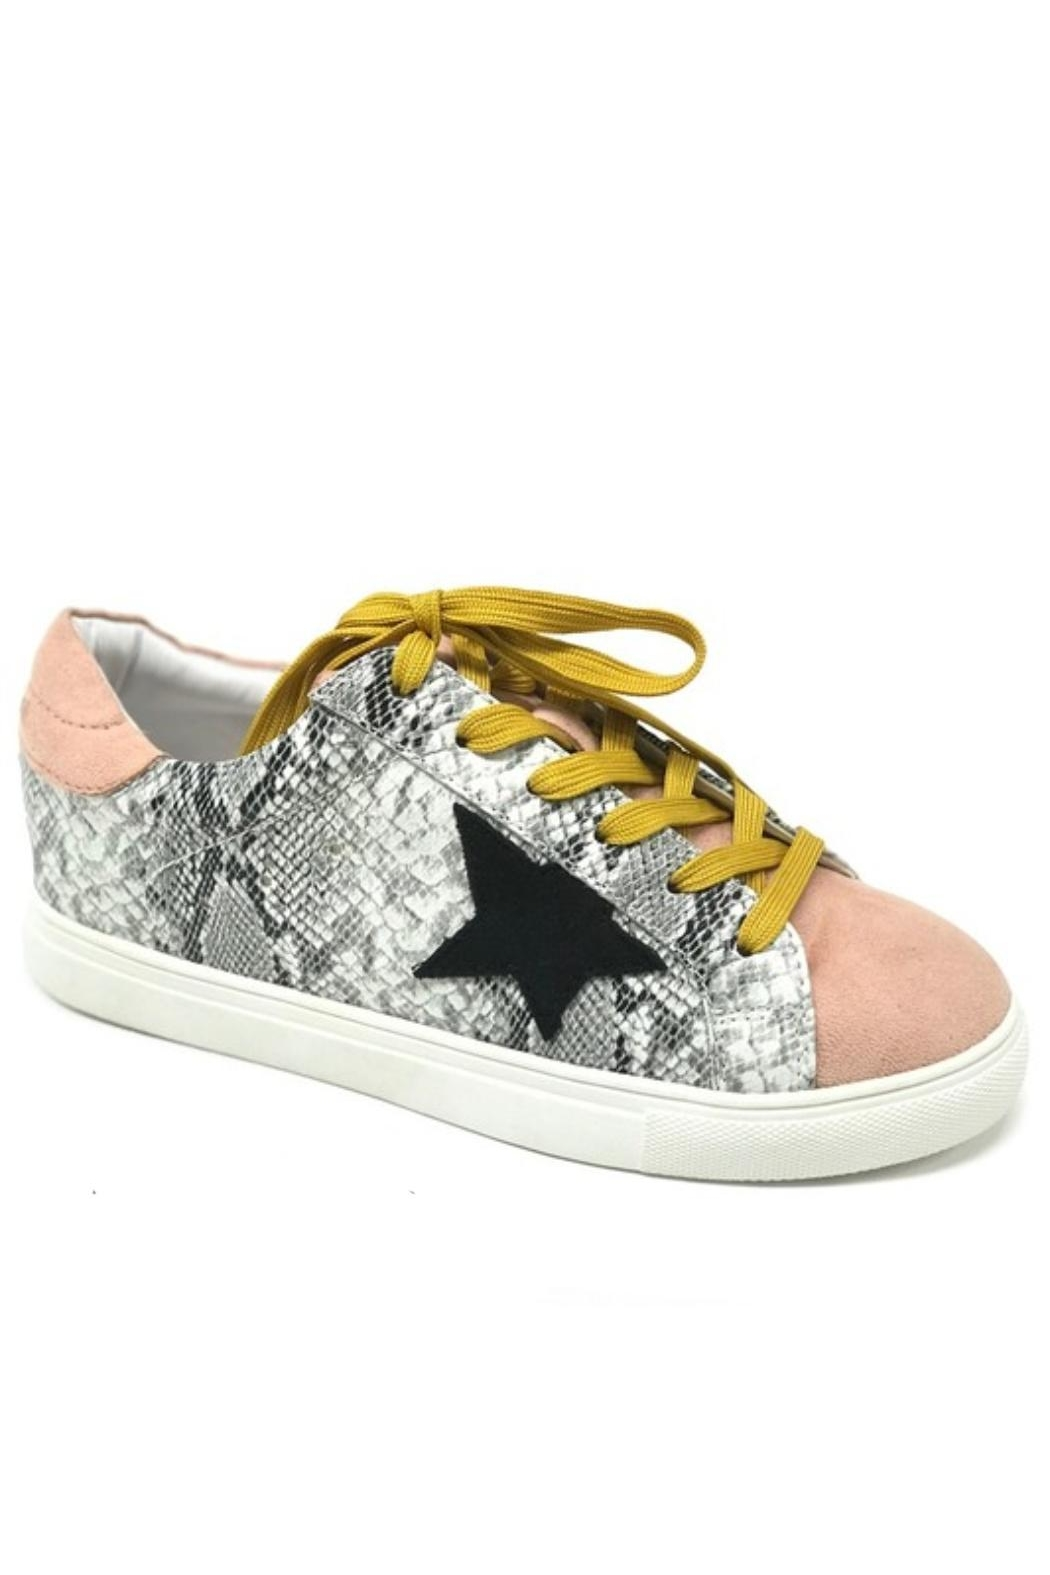 Nature Breeze Star Snake Sneakers - Front Full Image